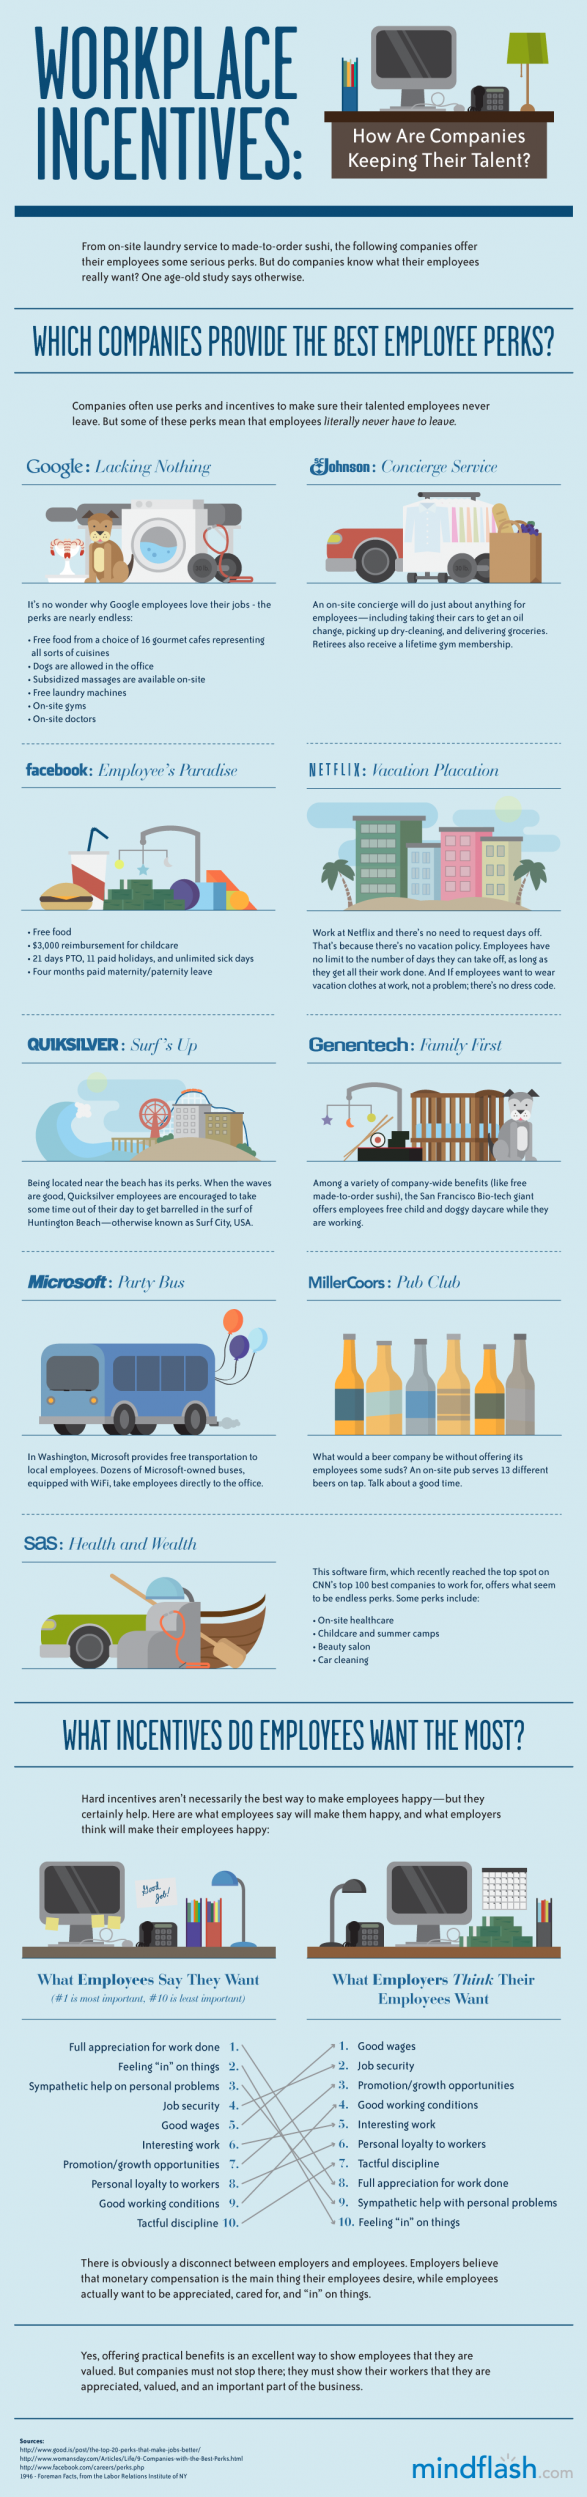 Infographic: Awesome Employee Perks From Facebook, Google